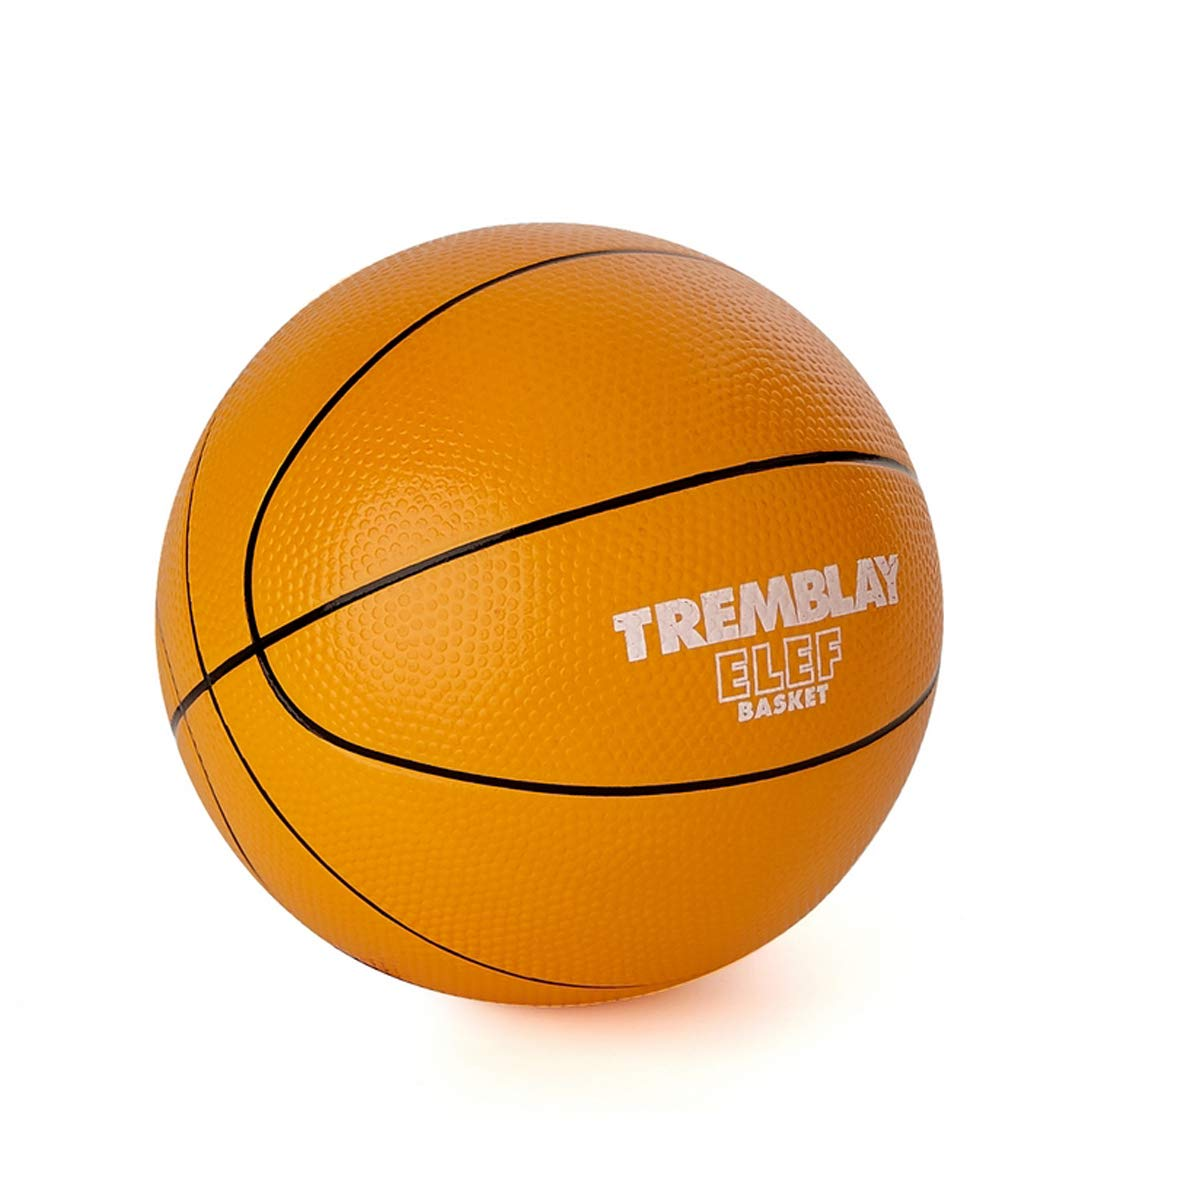 Visiodirect Ballon Basketball Mousse ELEF' Basket - Diamètre: 20cm -Poids: 300g